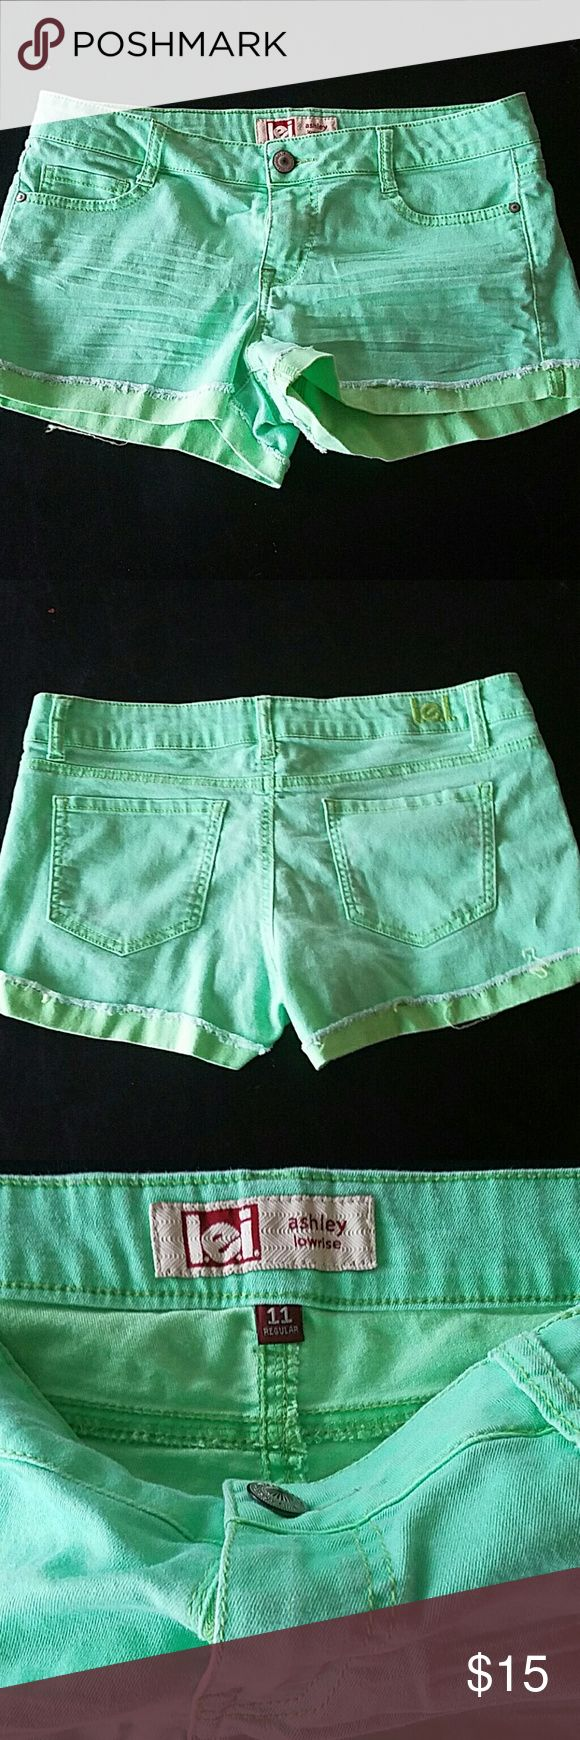 Funky neon green low rise shorts Light and stretchy shorts Shorts